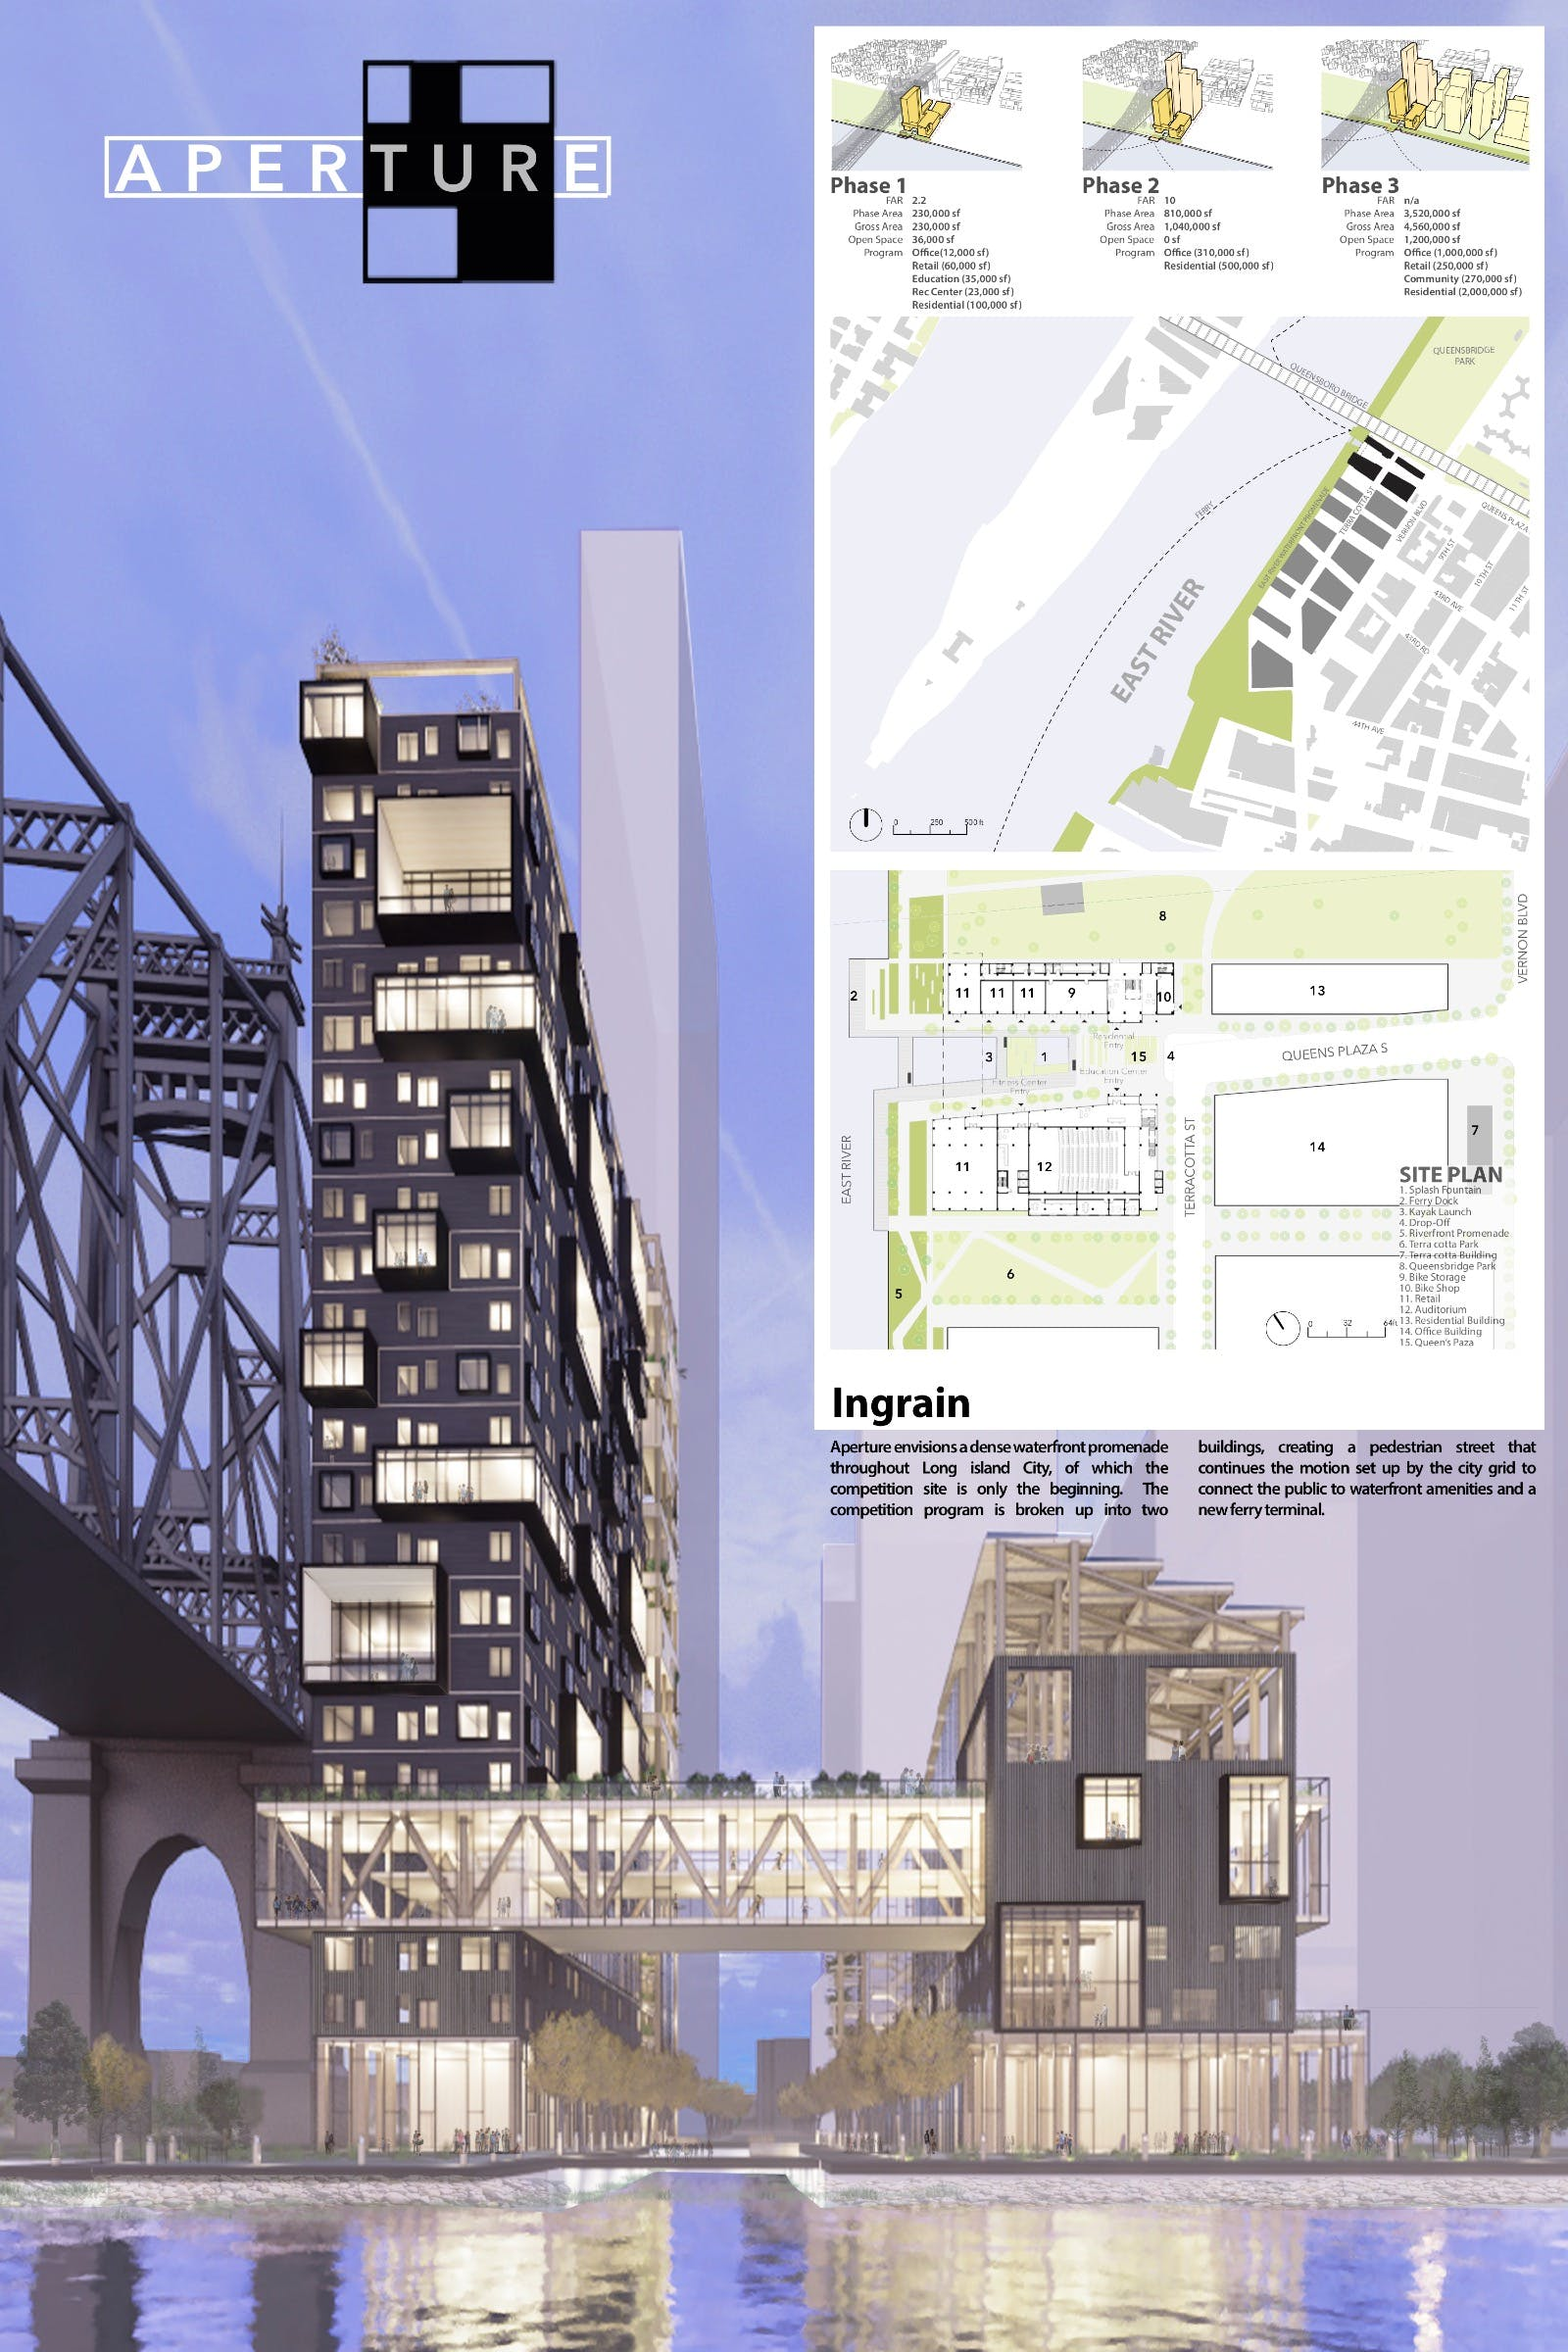 Winning ideas of the latest Timber in the City: Urban